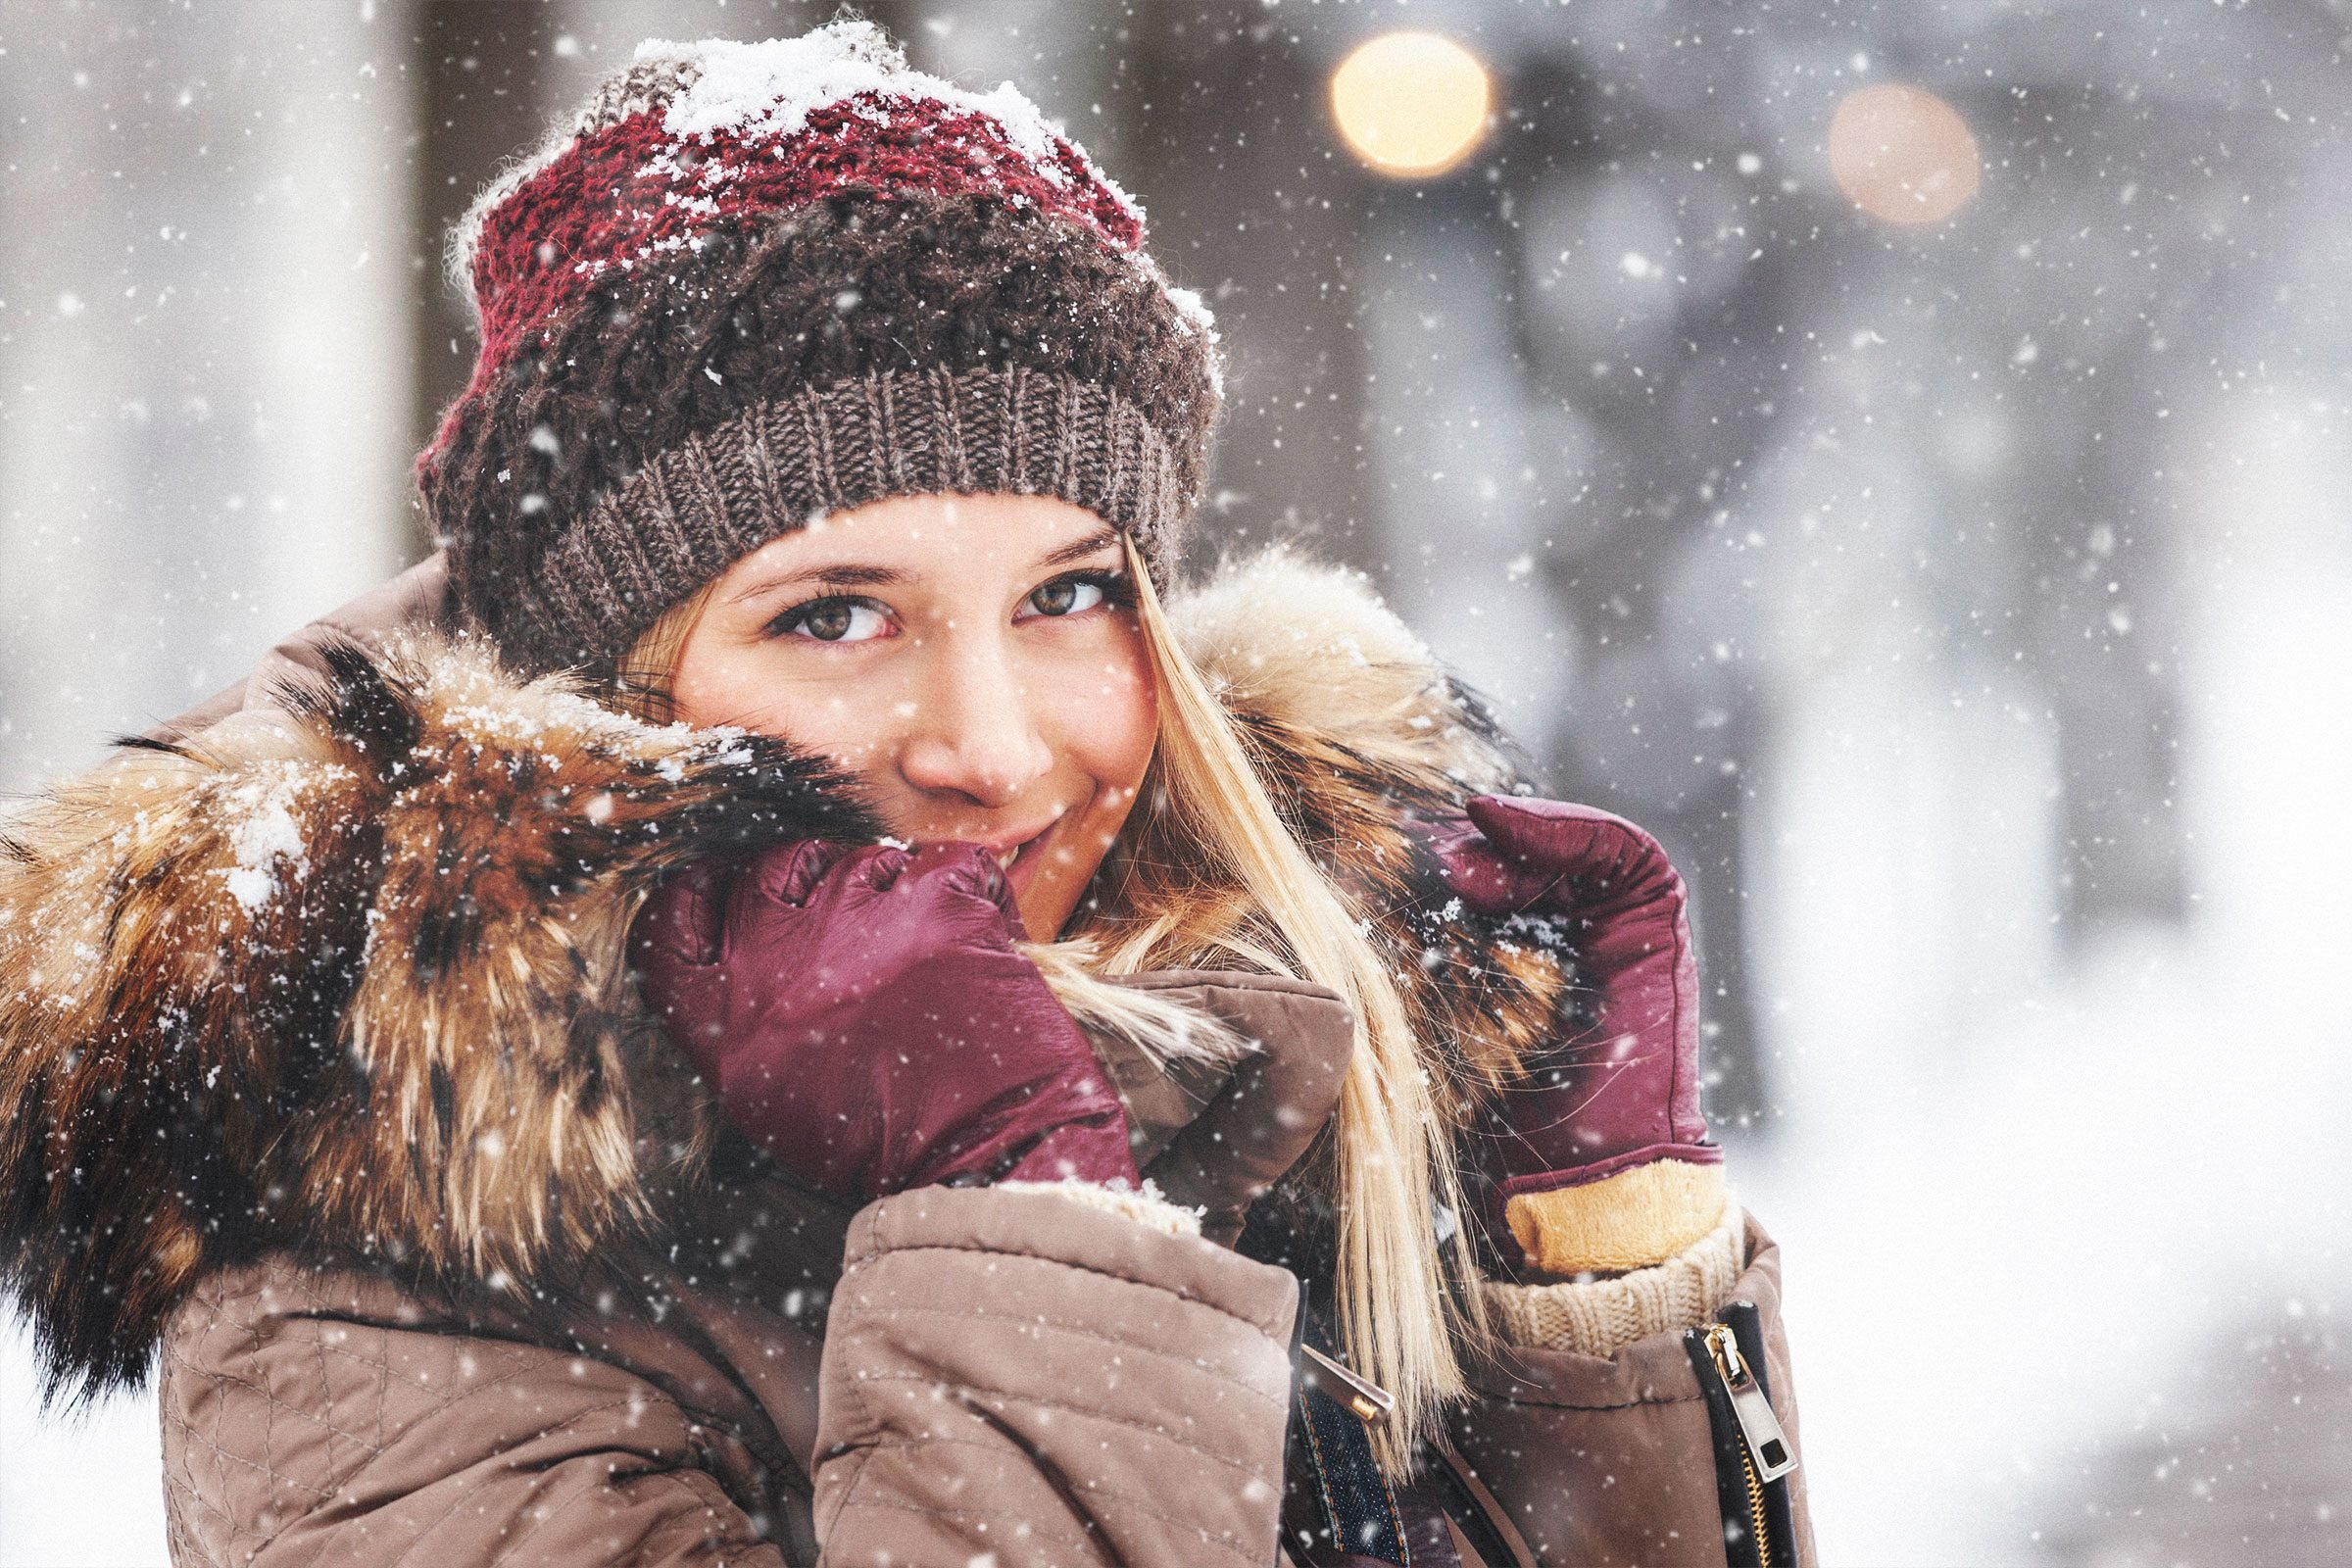 004858d3160 Here s Exactly How to Layer Clothes to Stay Warm This Winter